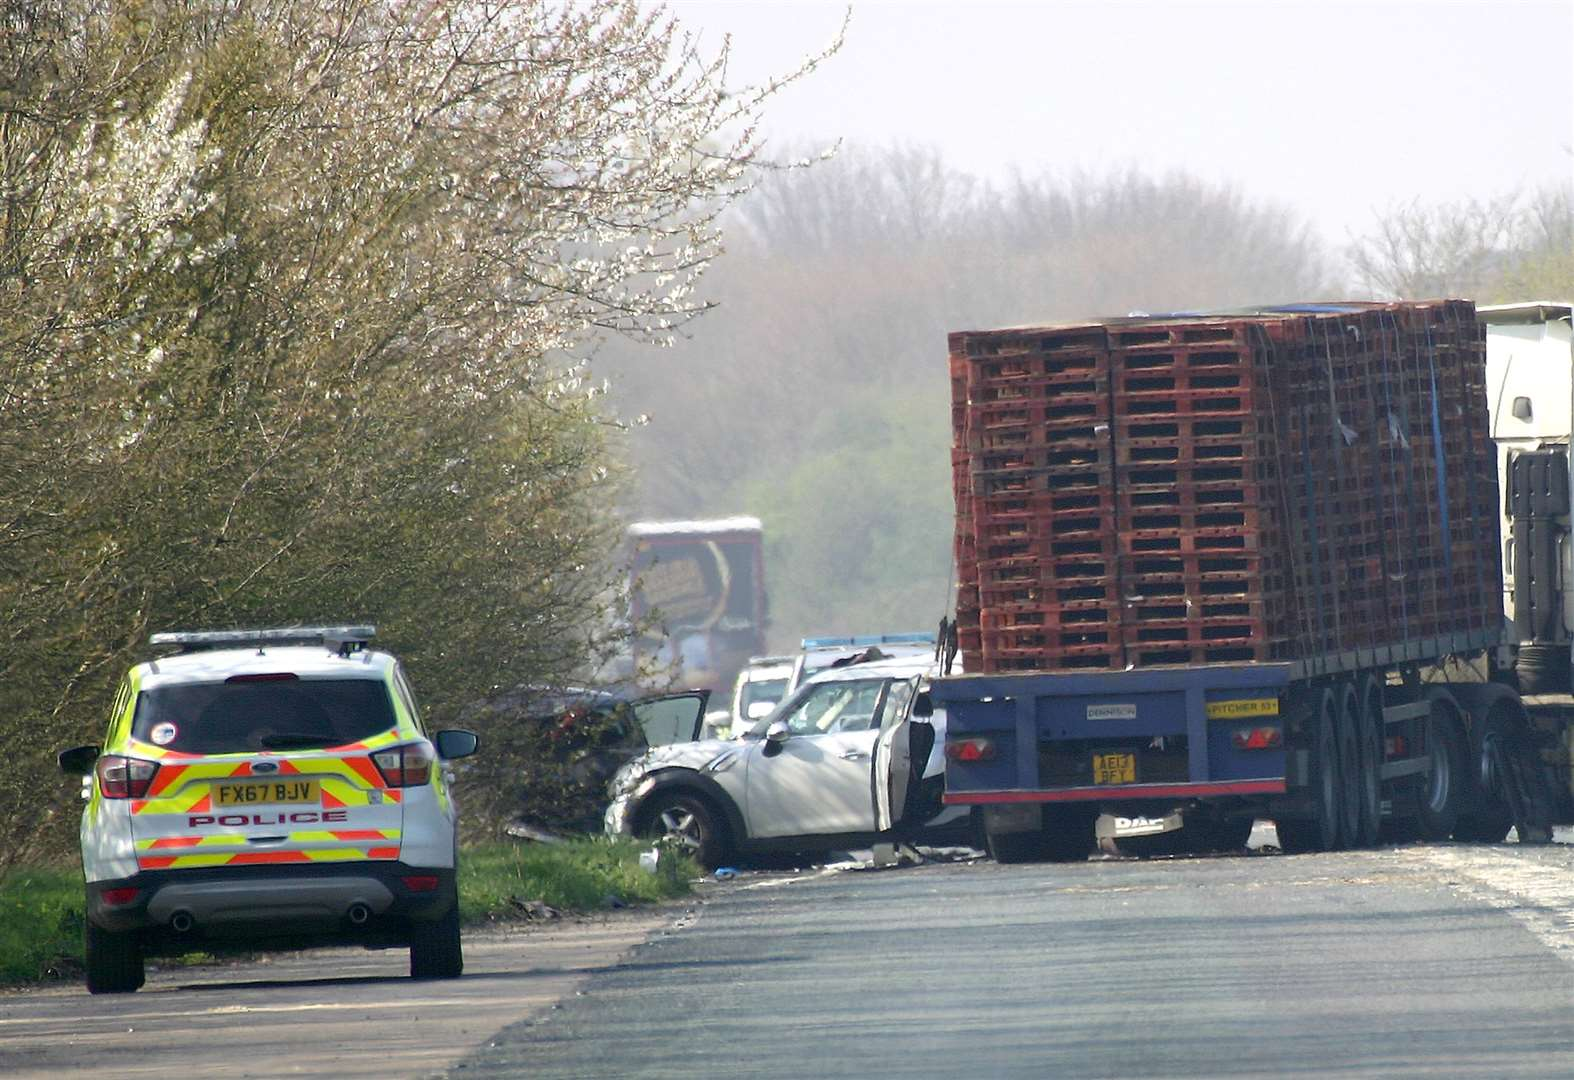 Man bailed following serious crash on A17 near Sutton Bridge